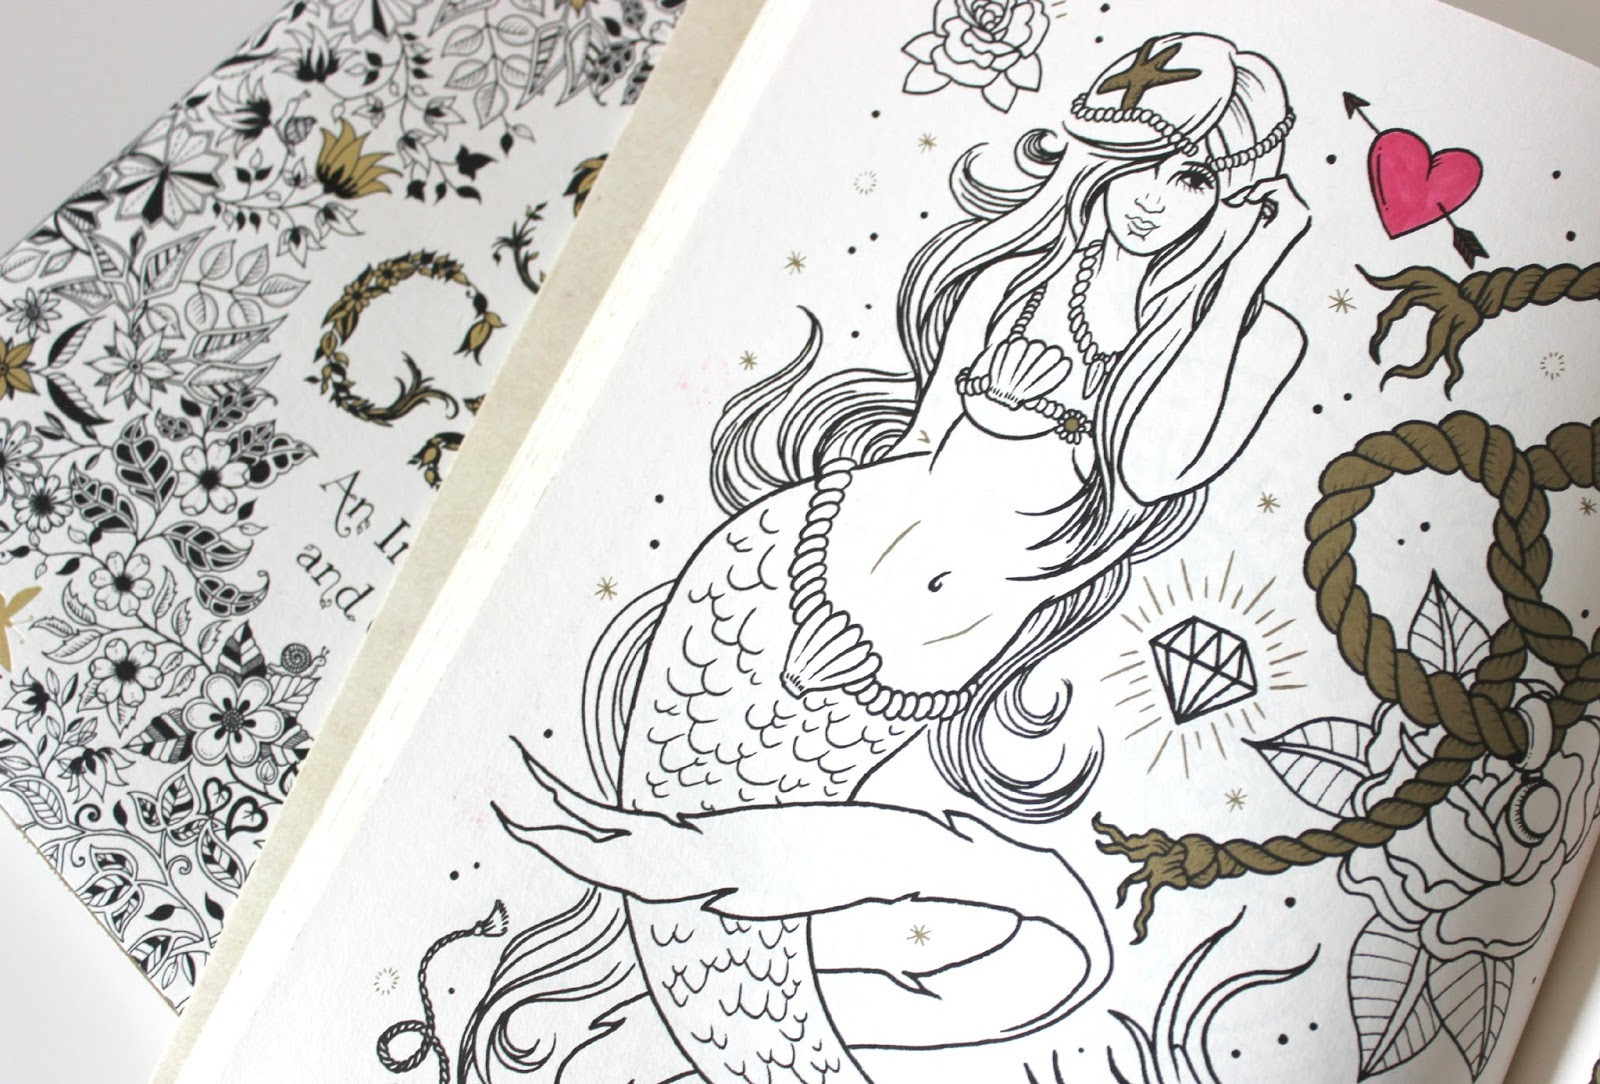 The coloring book tattoo - A Picture Of The Tattoo Colouring Book